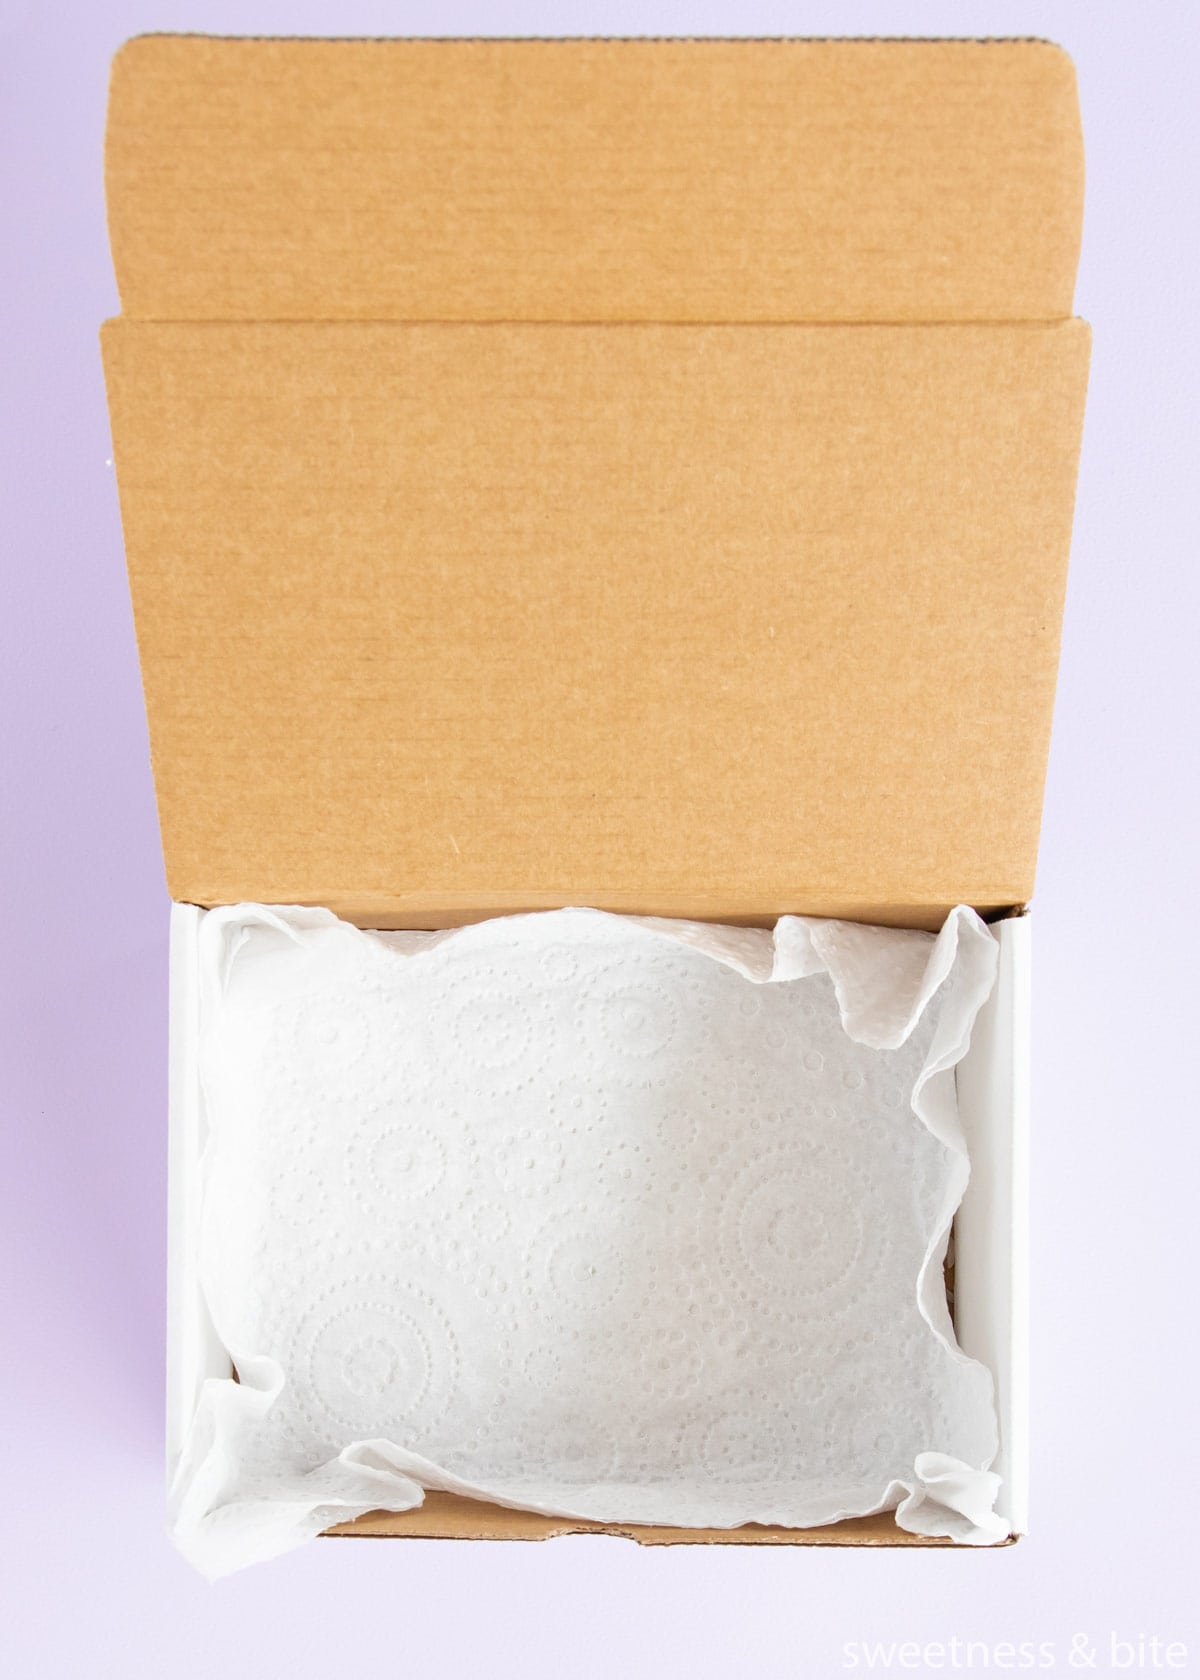 A box lined with a paper towel.